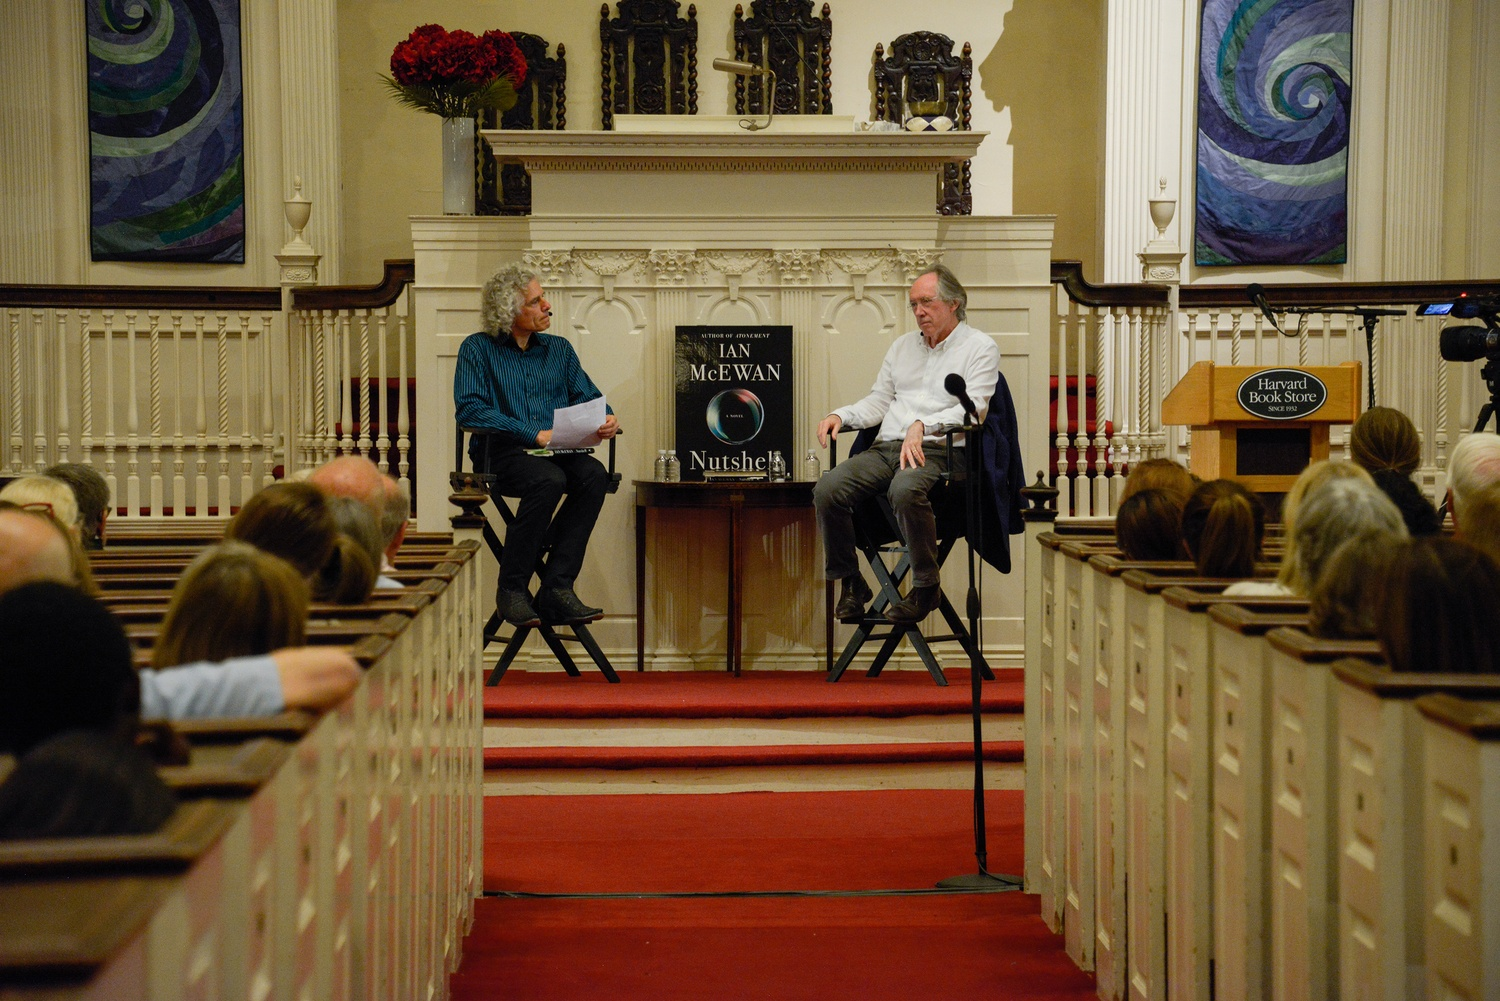 Inside the First Parish Church of Cambridge, Ian McEwan, author of Atonement and Nutshell, discusses his newest release with Harvard Professor Steven Pinker.